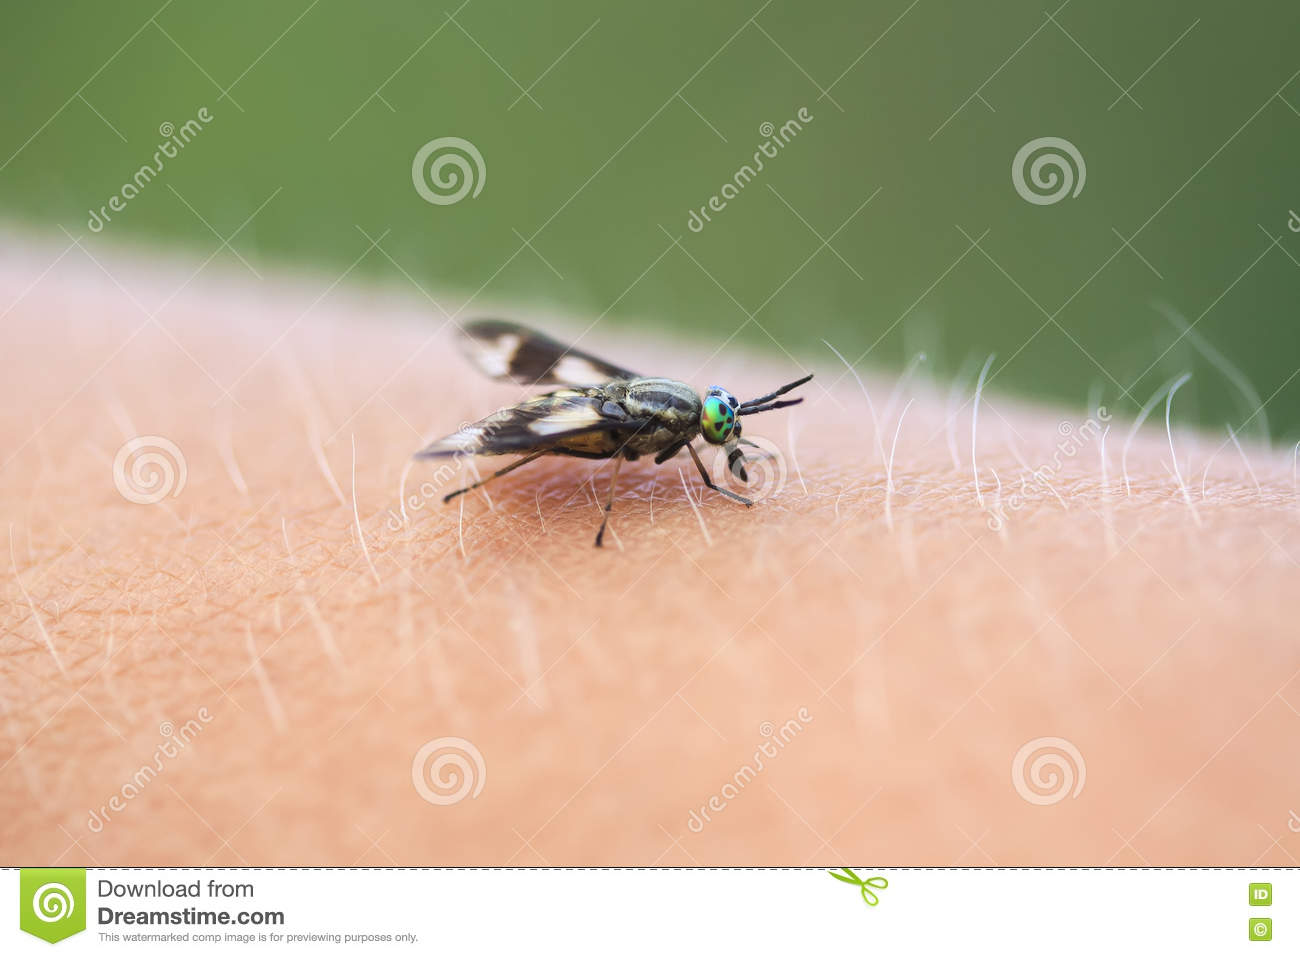 Gadfly - an insect attacking animals and humans. What to do when biting gadfly 89